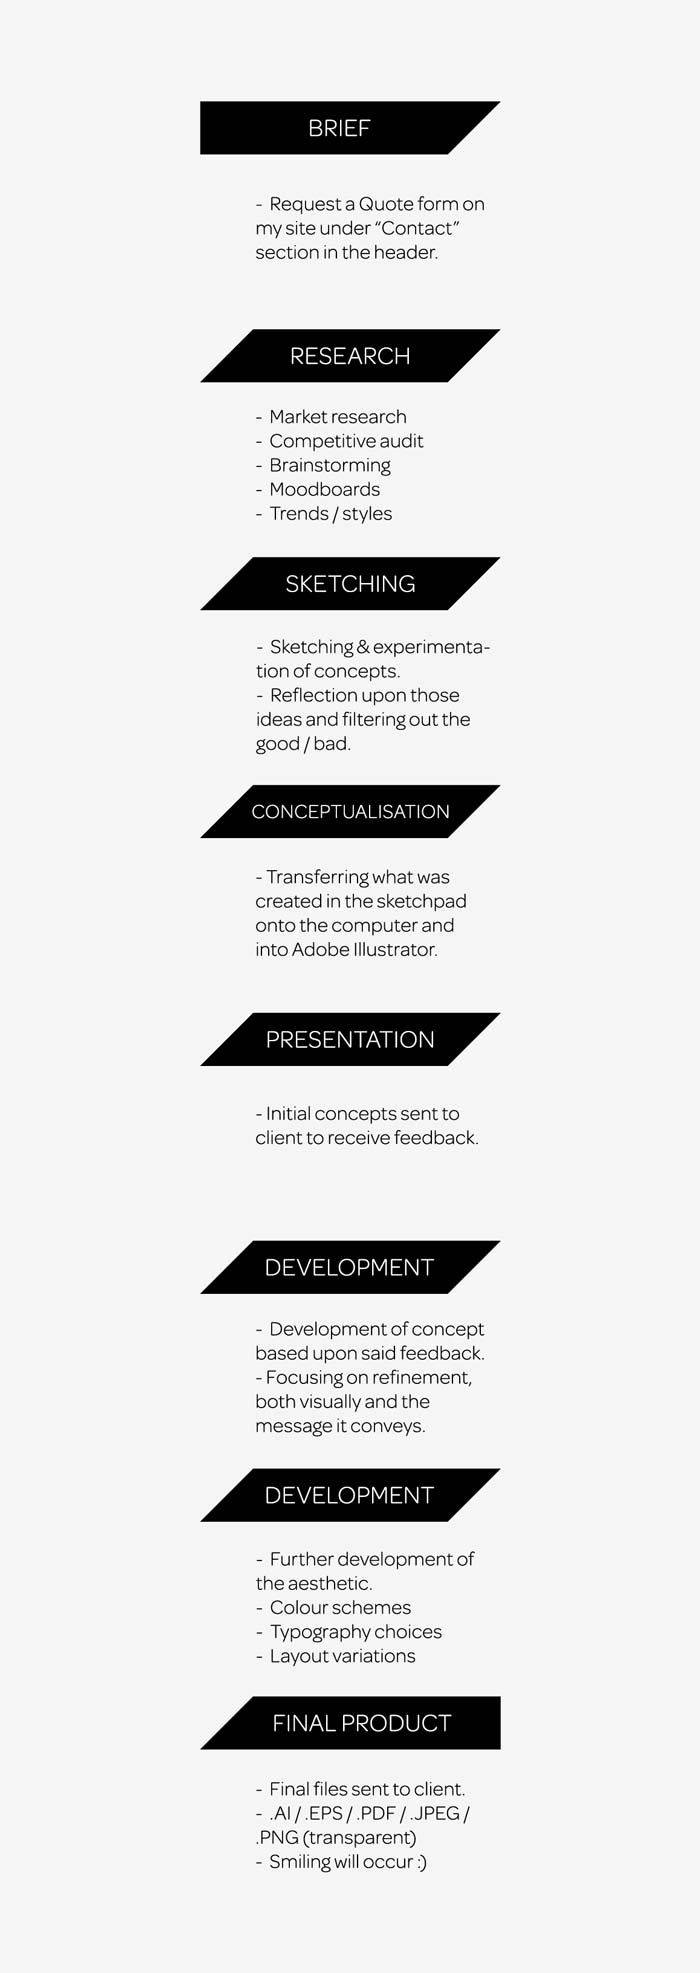 Logo Design Process Infographic